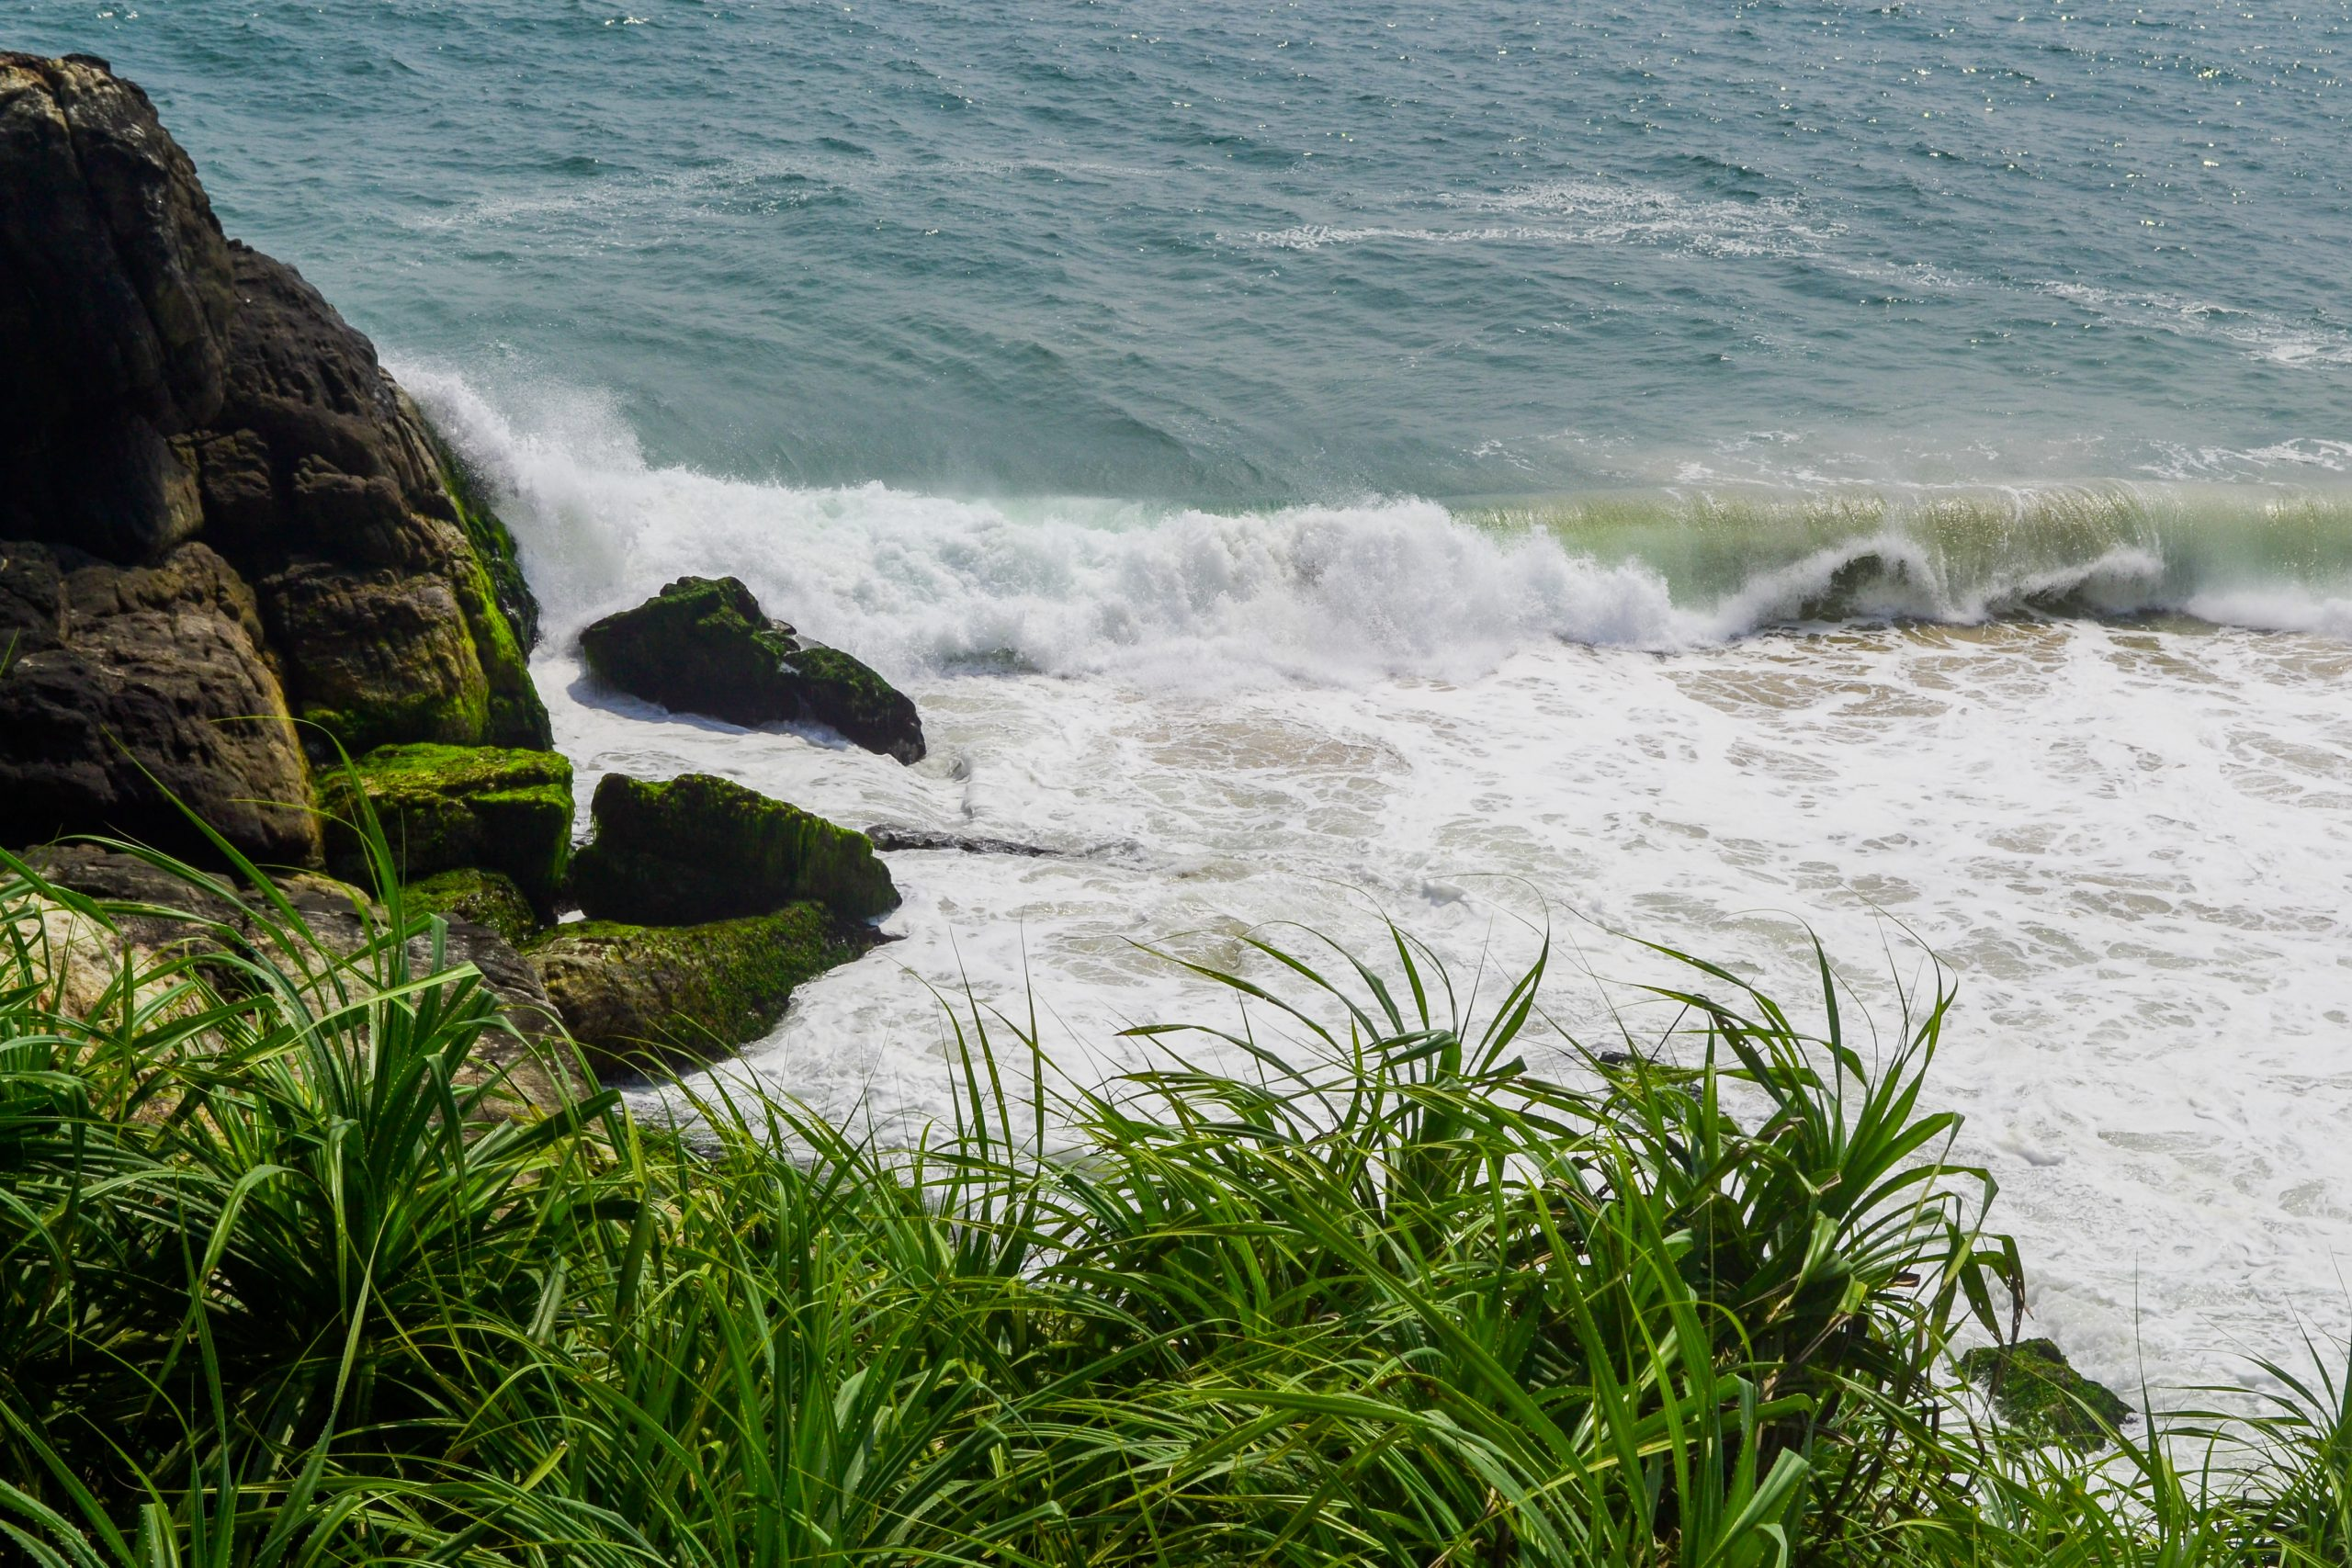 Seawaves at beach